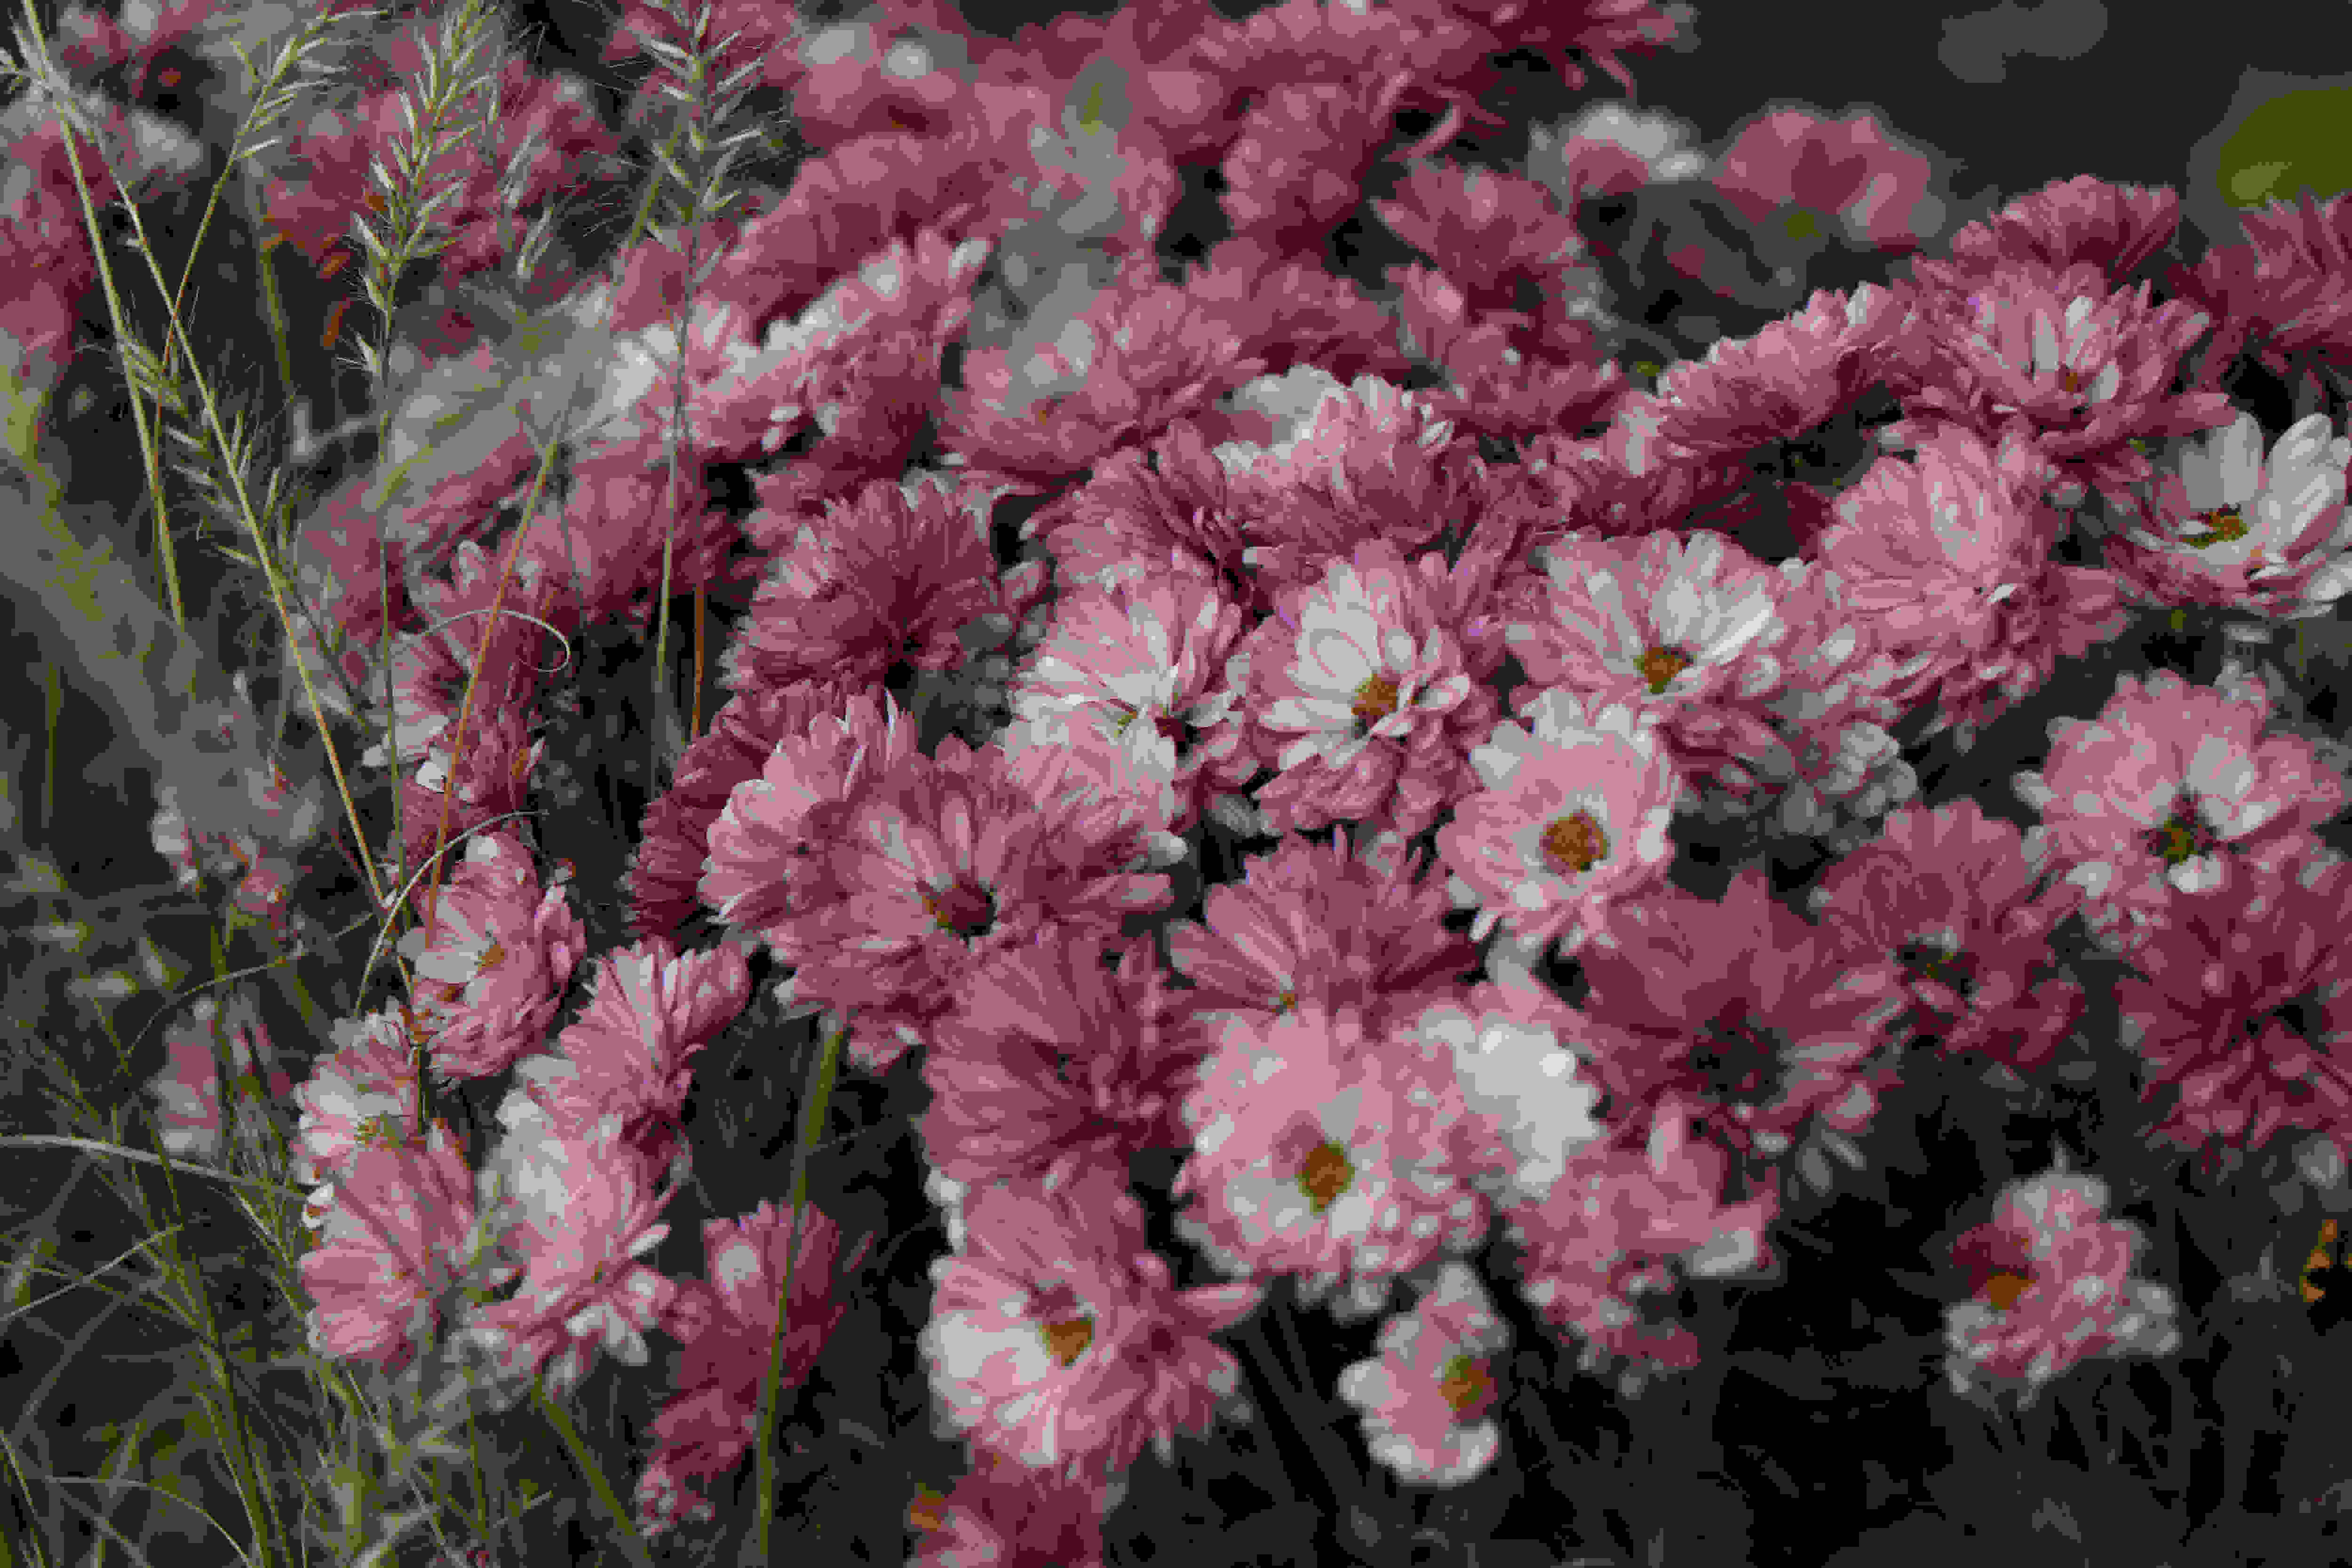 A sample photo of flowers taken by the Canon EOS 7D Mark II.